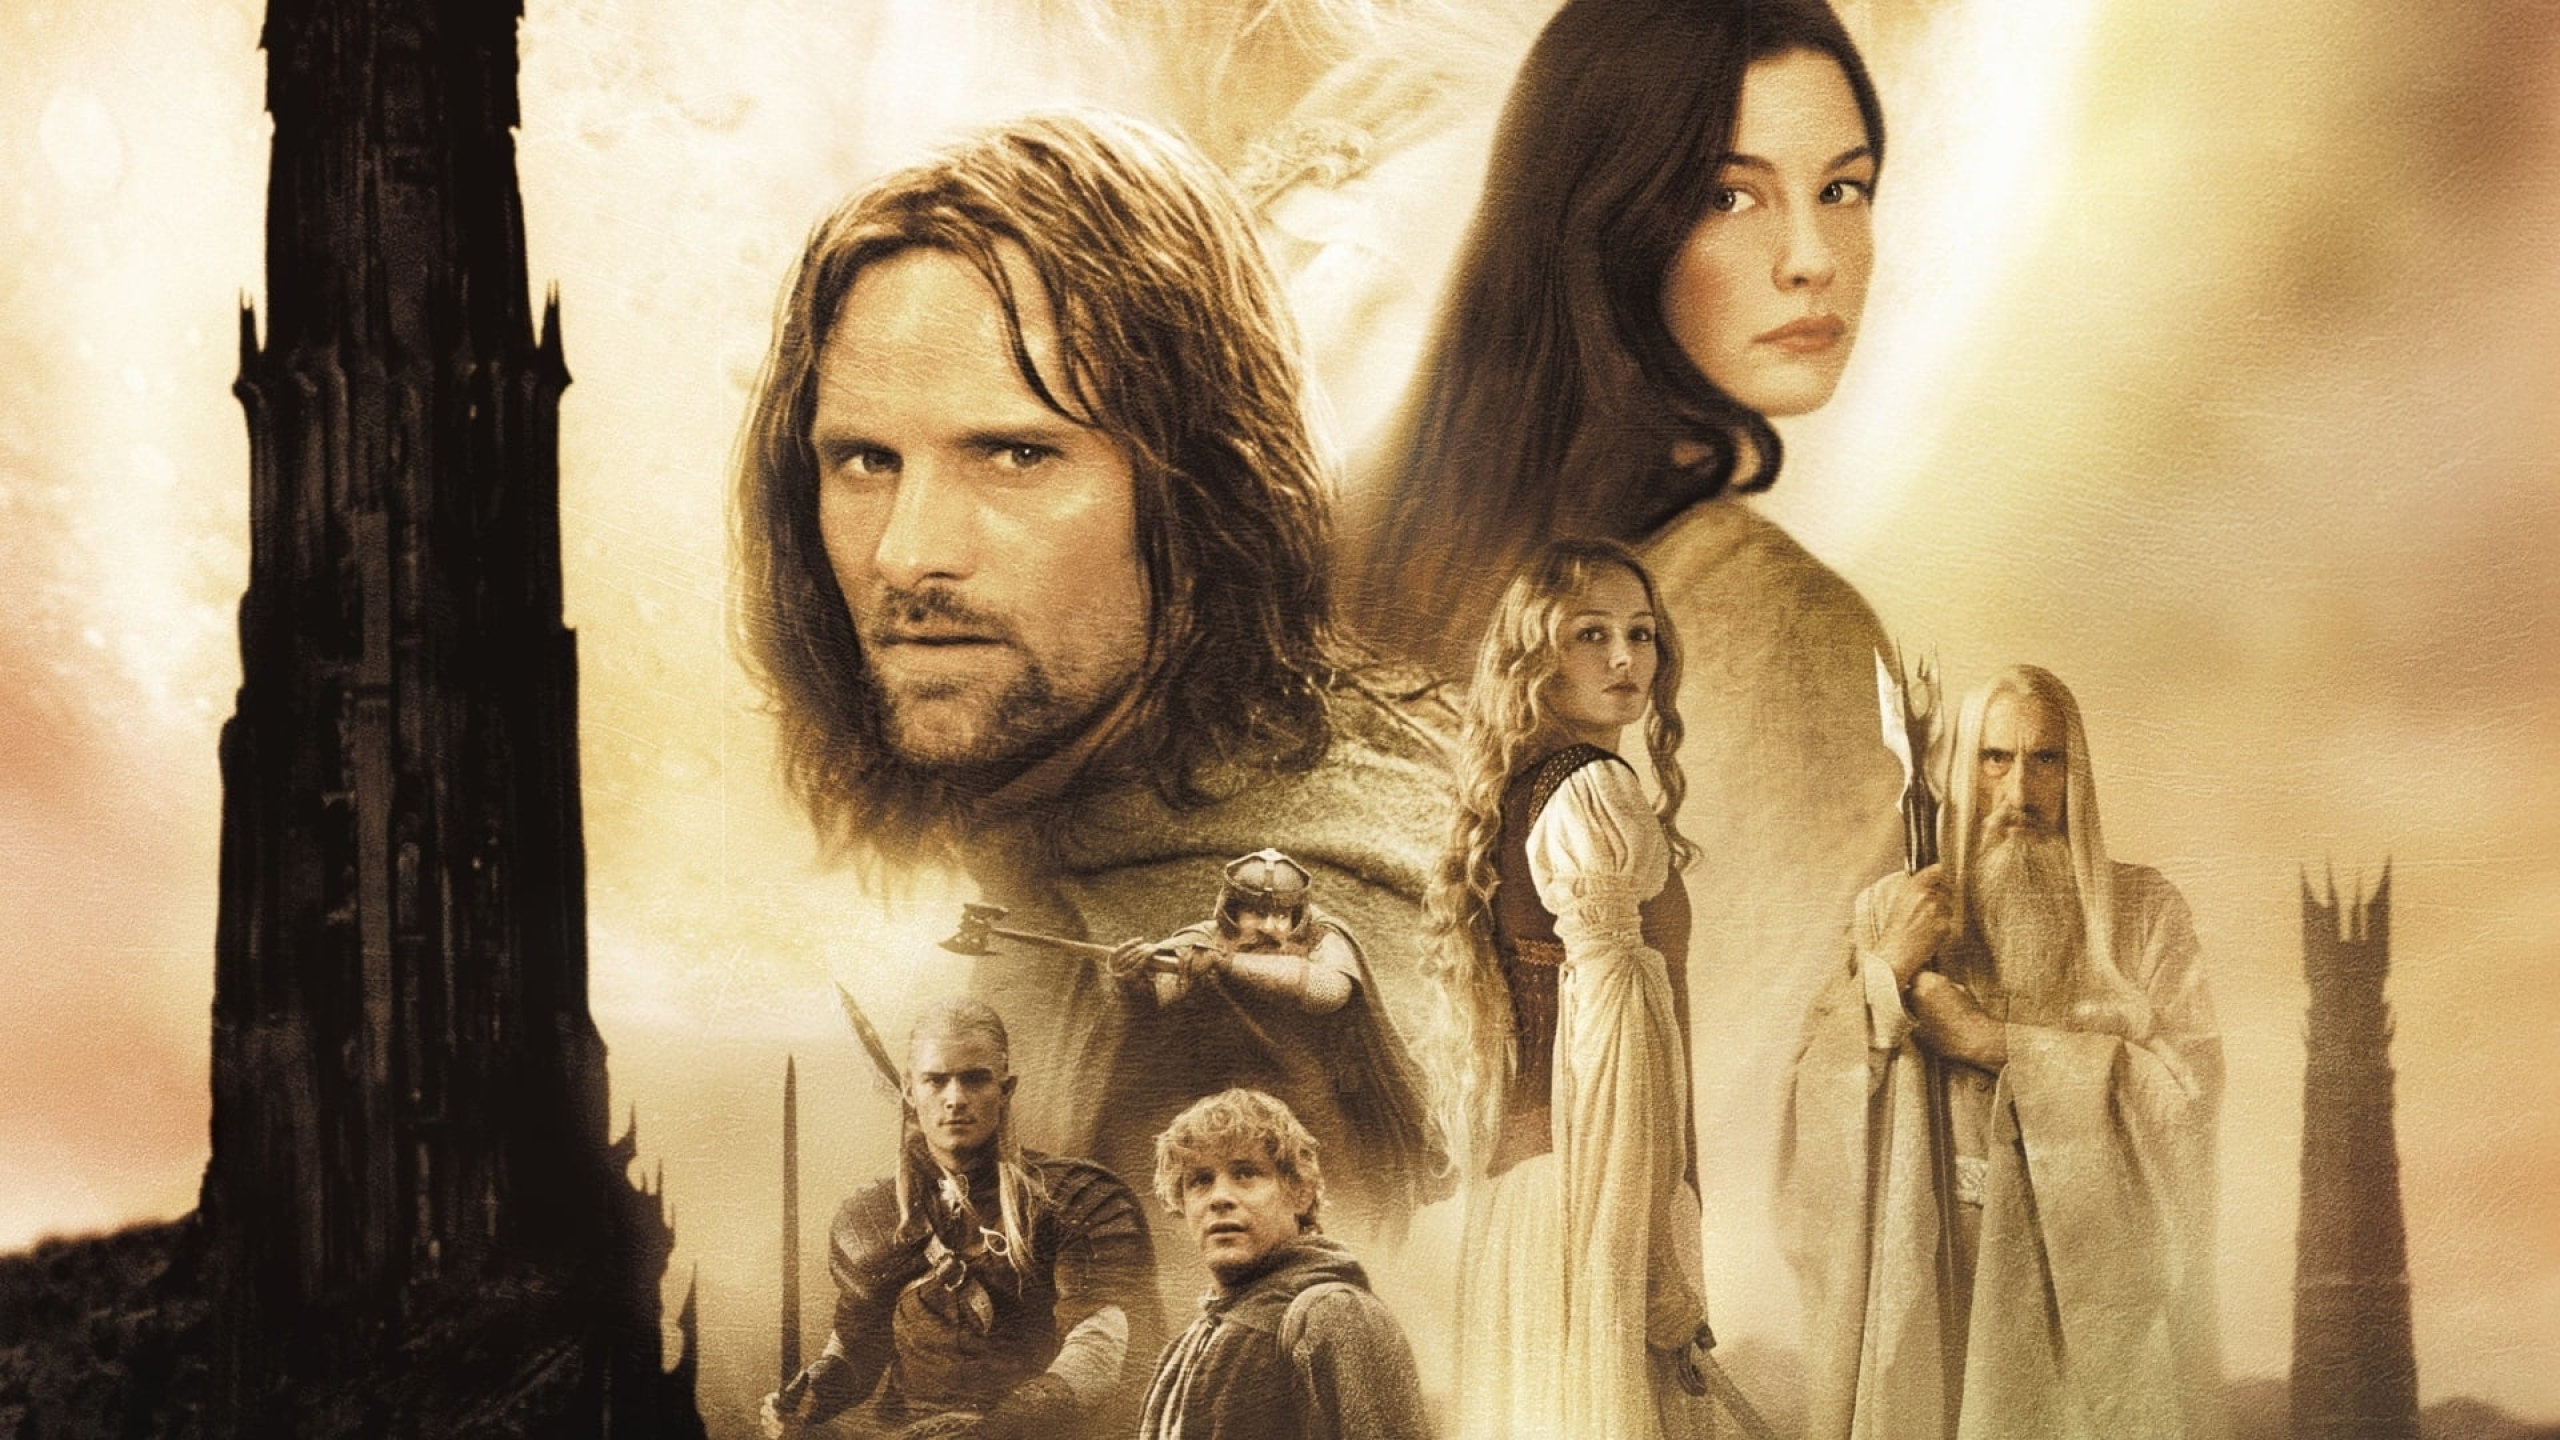 2560x1440 The Lord Of The Rings The Two Towers 1440p Resolution